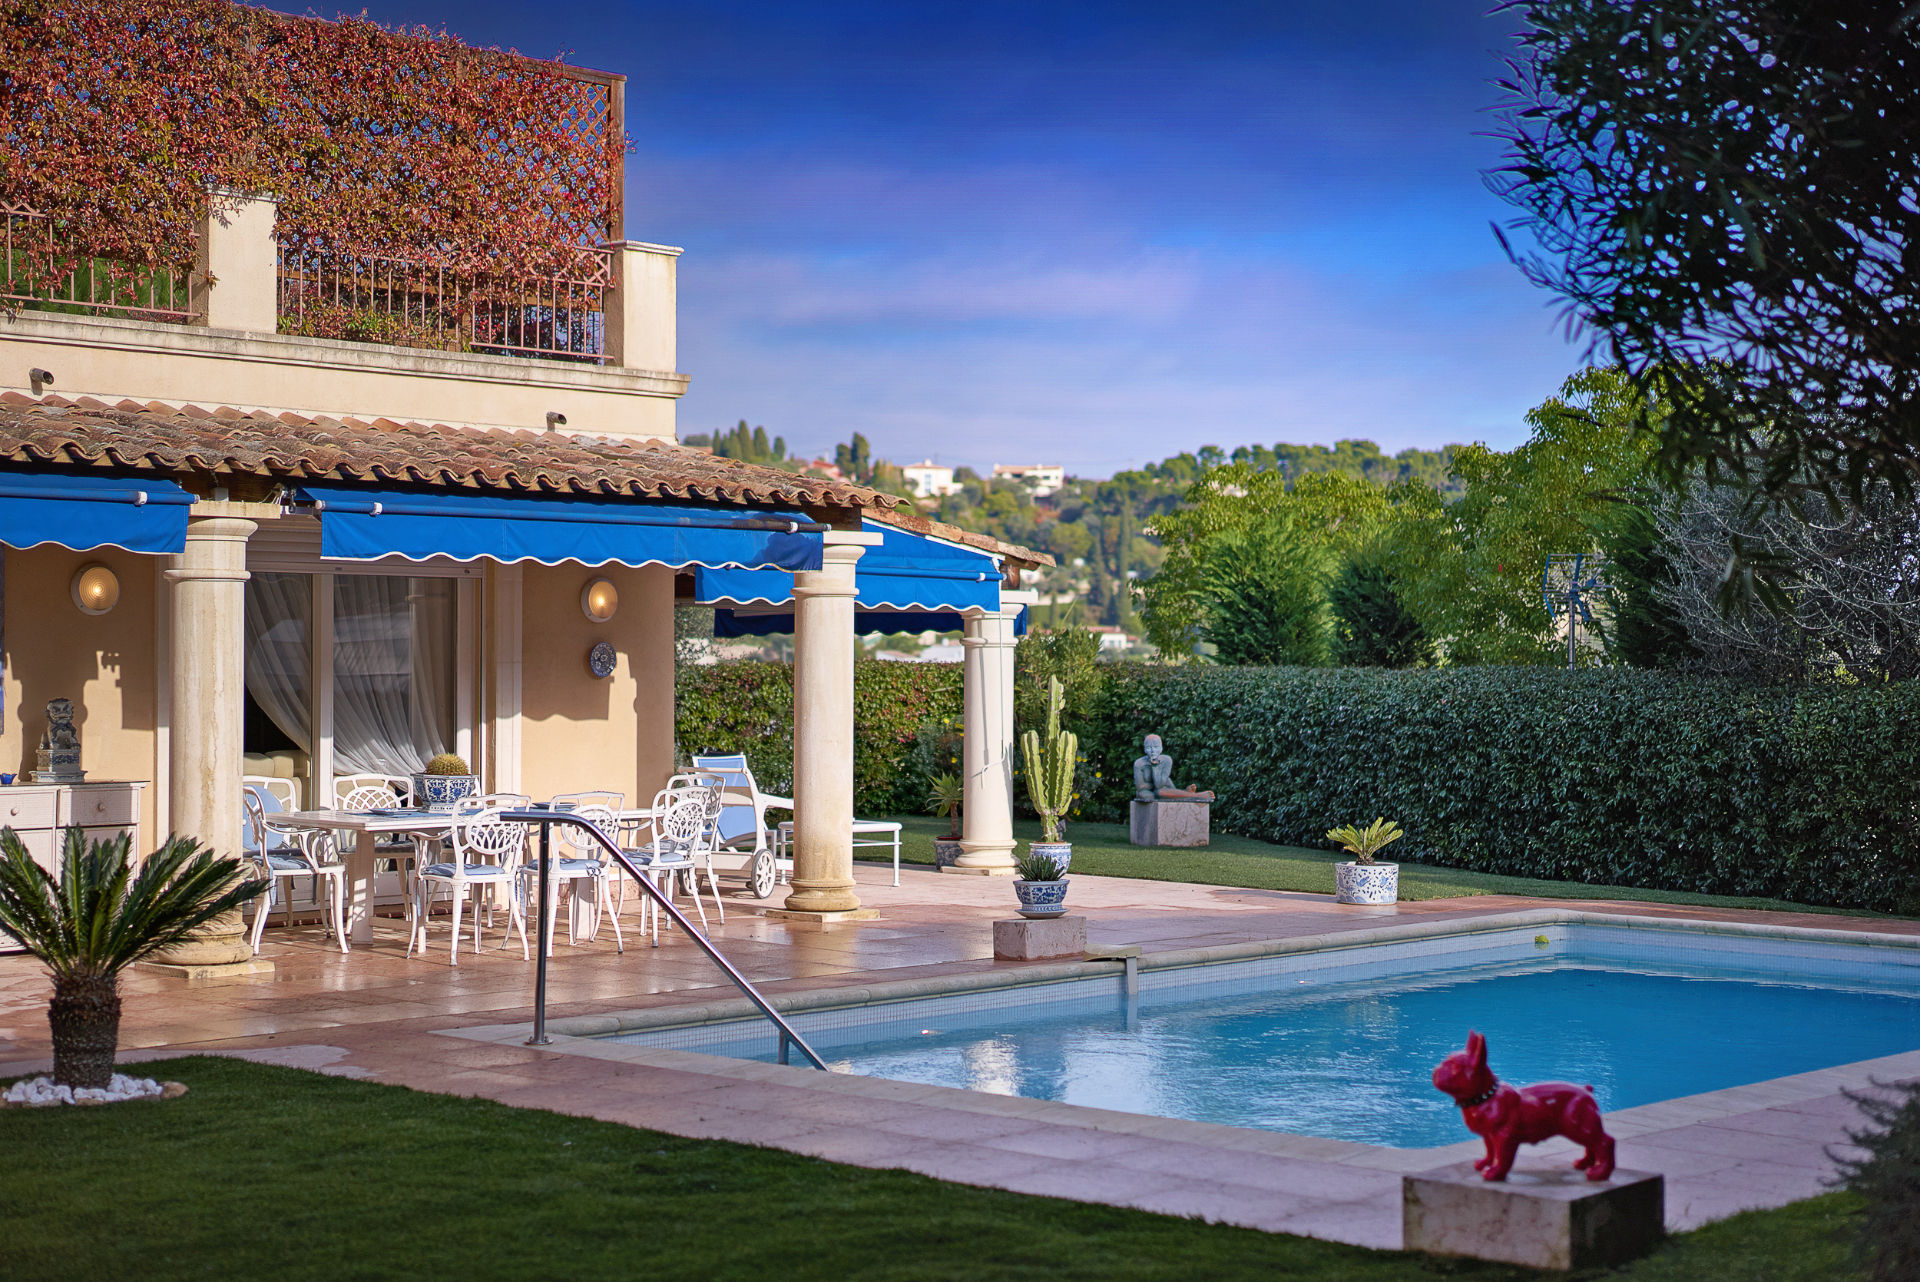 Single Family Home for Sale at Lovely villa in a private domain Villefranche Villefranche, Provence-Alpes-Cote D'Azur 06230 France